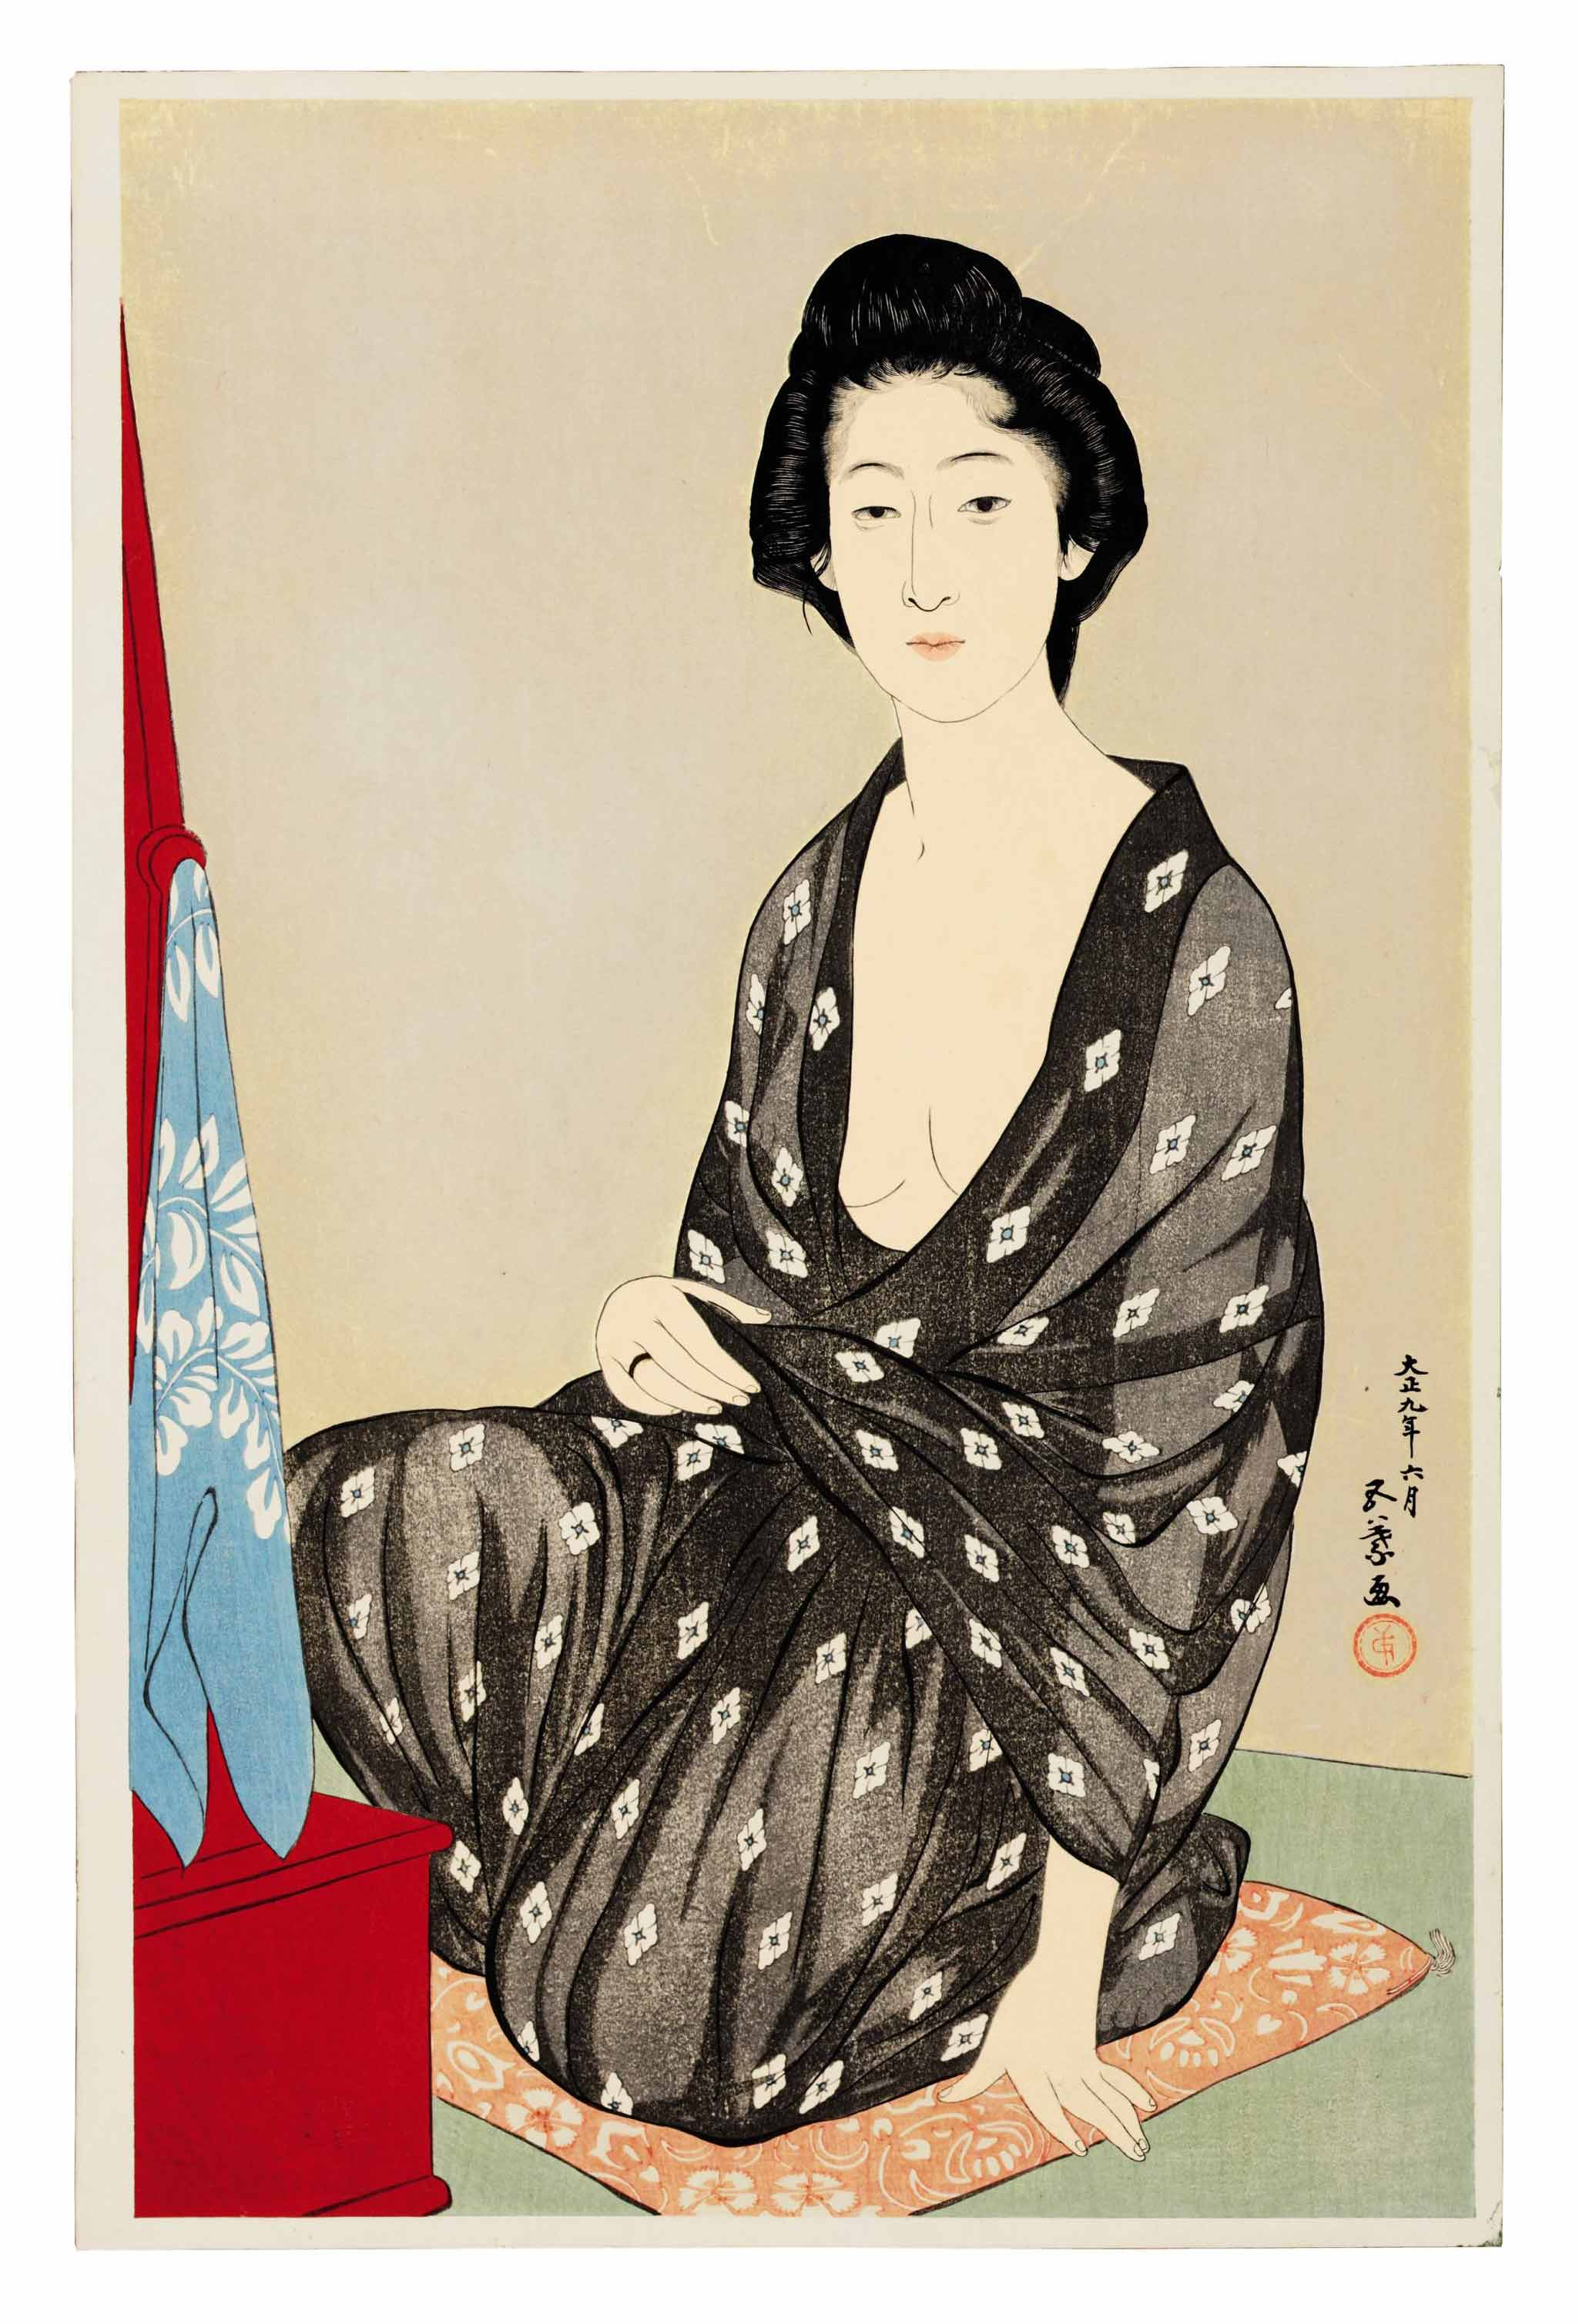 Natsugoromo no onna (Woman in summer clothing), 1920